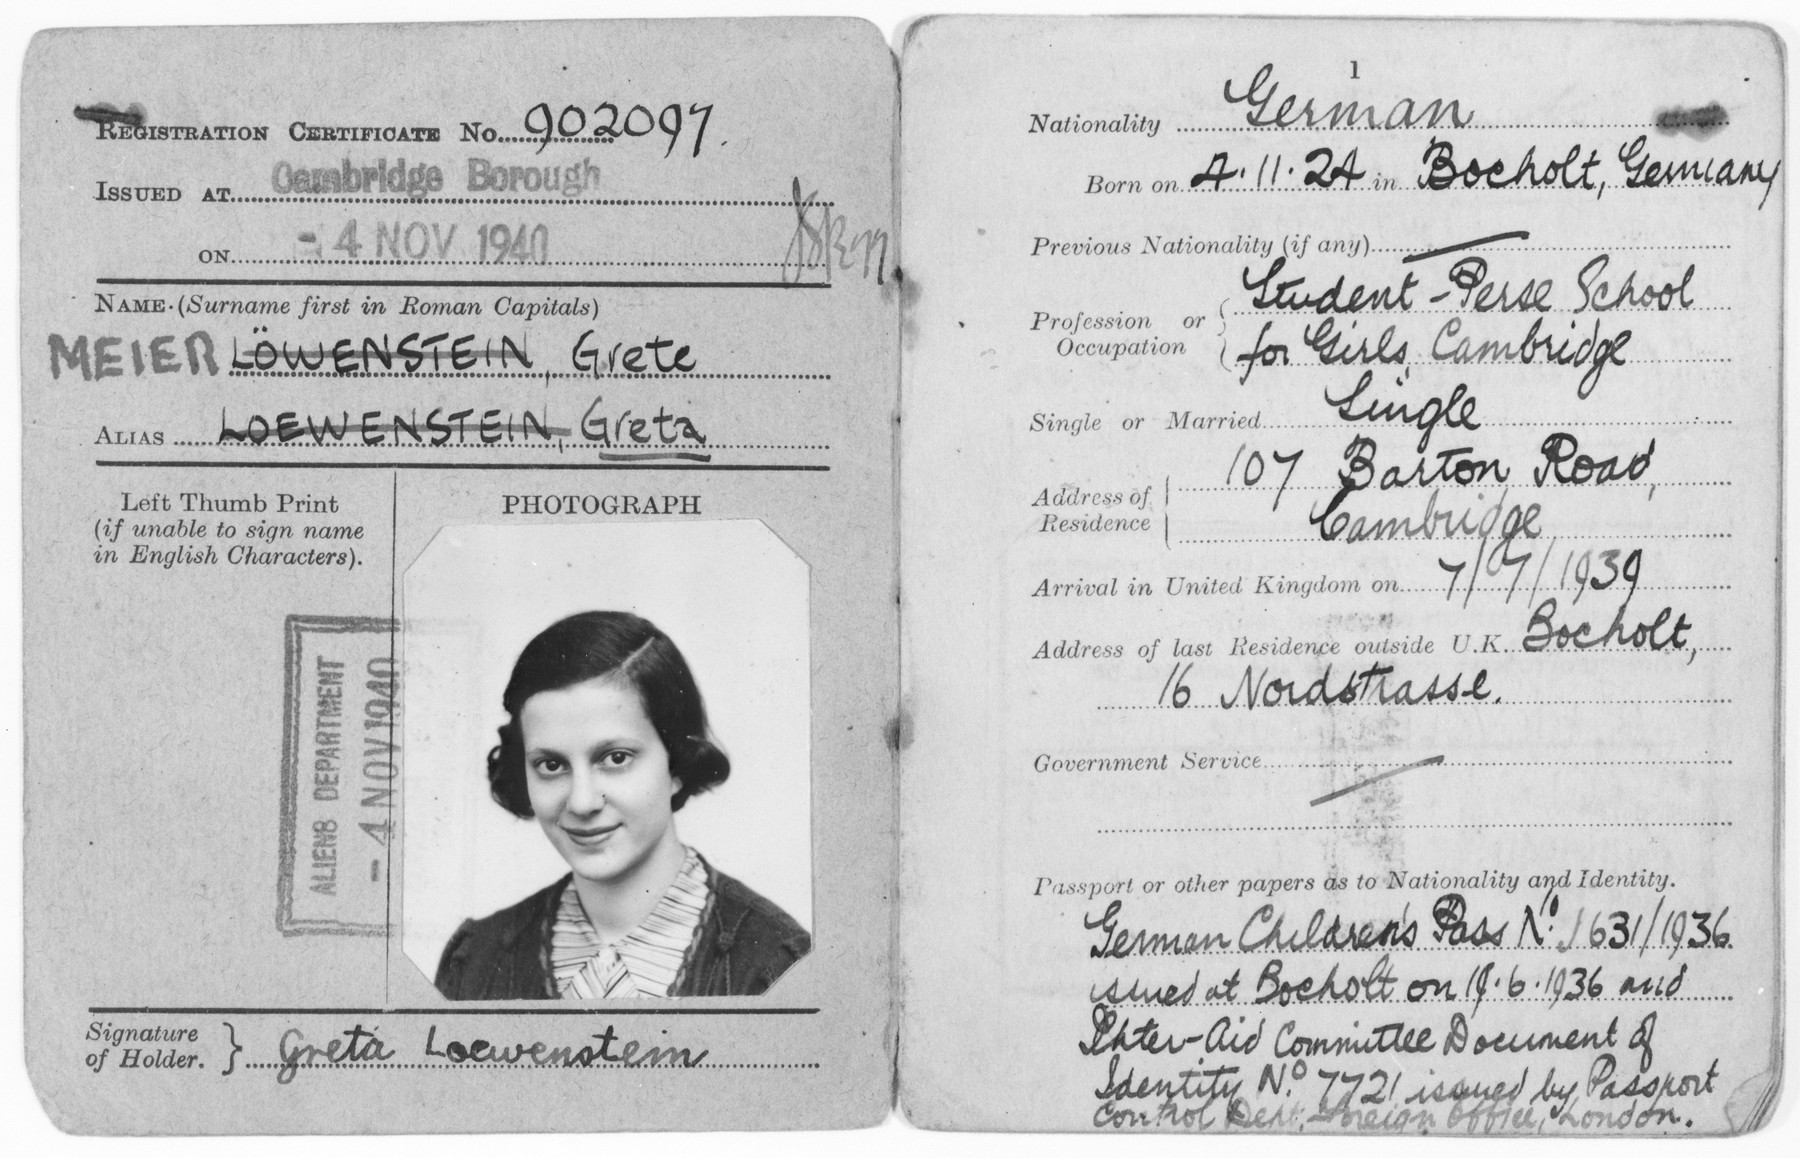 Certificate of registration issued to Grete Loewenstein who came to England on a Kindertransport in July 1939.